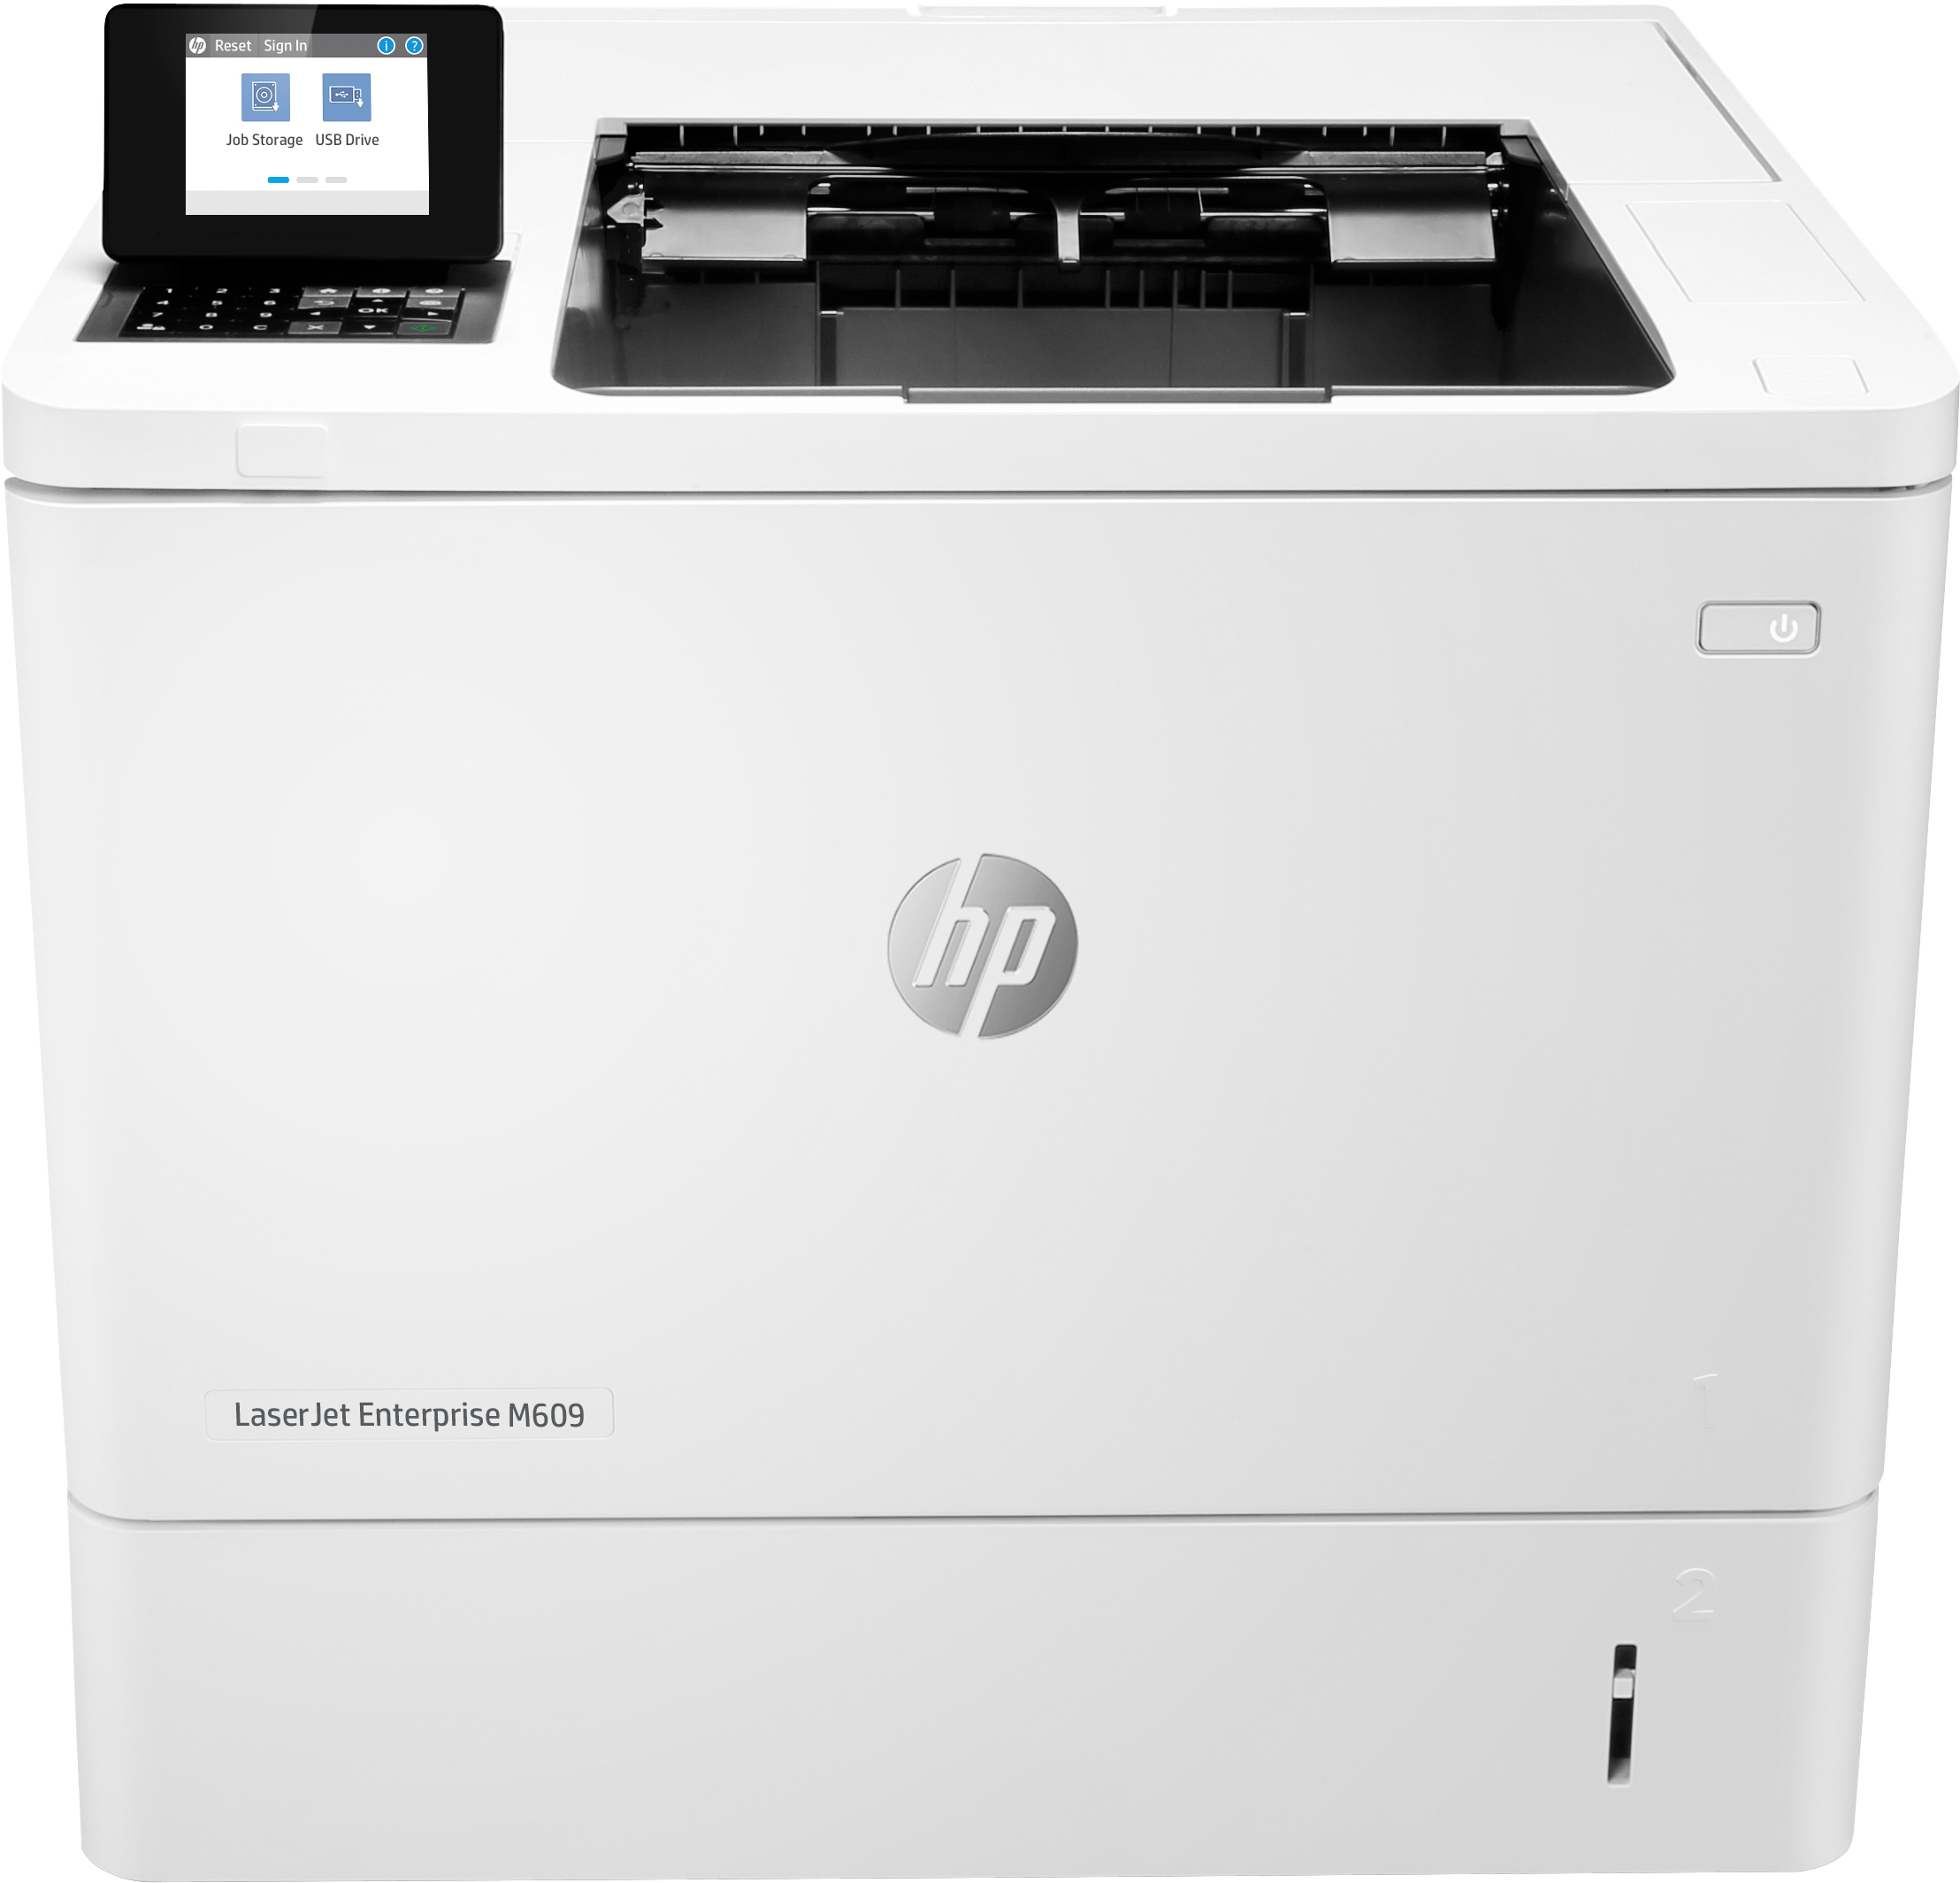 K0Q21A HP Laserjet m609dn Printer - Refurbished